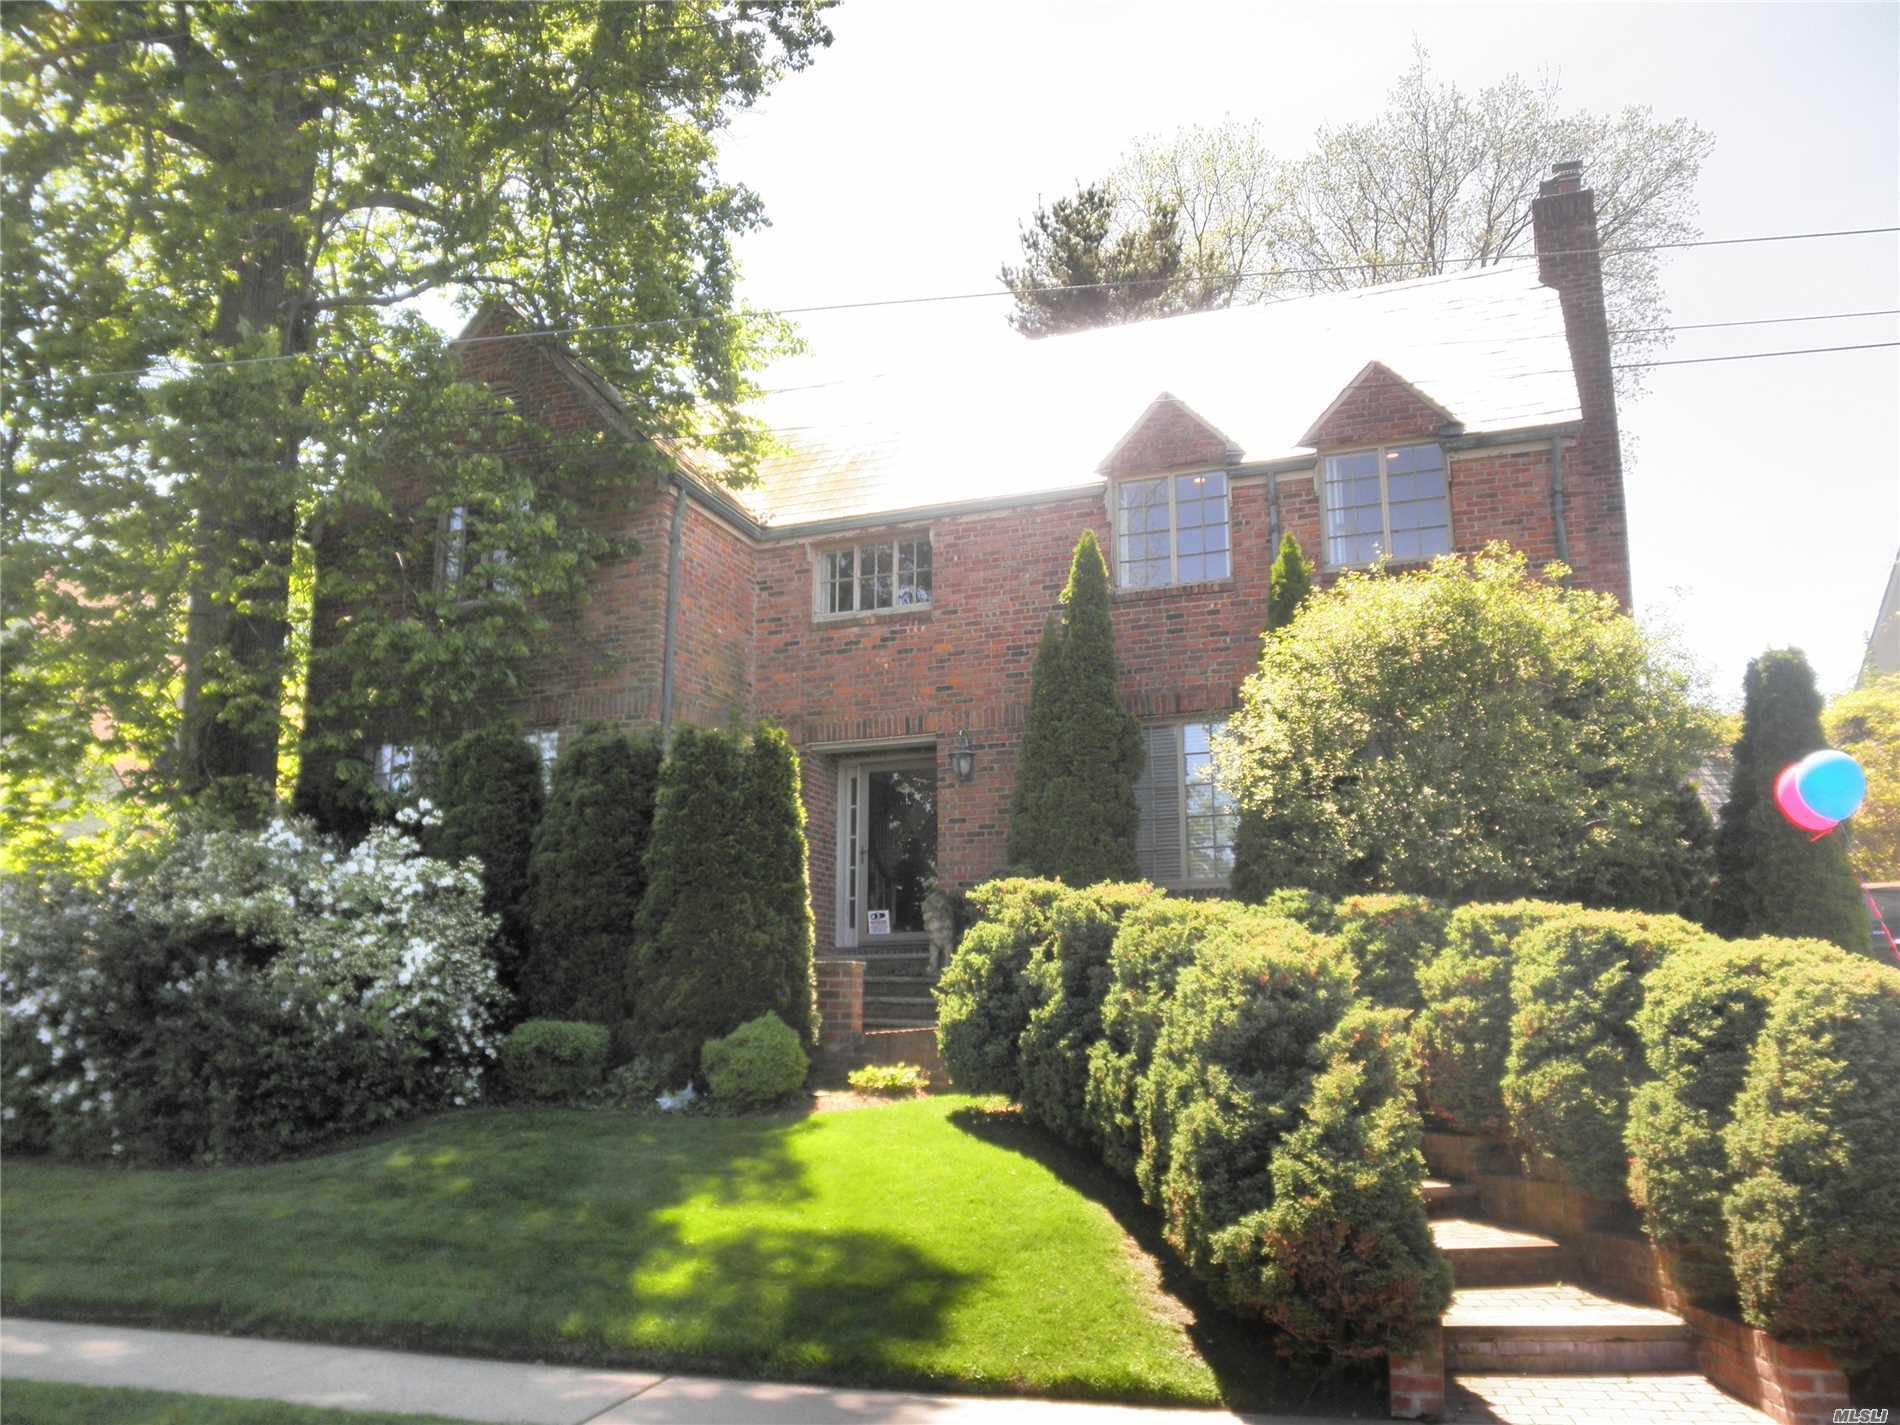 Rare Opportunity Direct Waterfront Gem In The Heart Of Douglaston Manor-Water ! Water ! Water ! Stately All Brick Center Hall Colonial. Amazing Designer Showplace Home With Finest Quality ! This Elegant Home Is Totally Renovated With Fabulous Living Space With Luxury Custom Kitchen & Baths. Great Opportunity To Get Into Prestigious Waterfront Community !! Enjoy Tennis, Pool, Boating & Douglas Manor Club. Easy 30 Minutes Commute To Nyc.